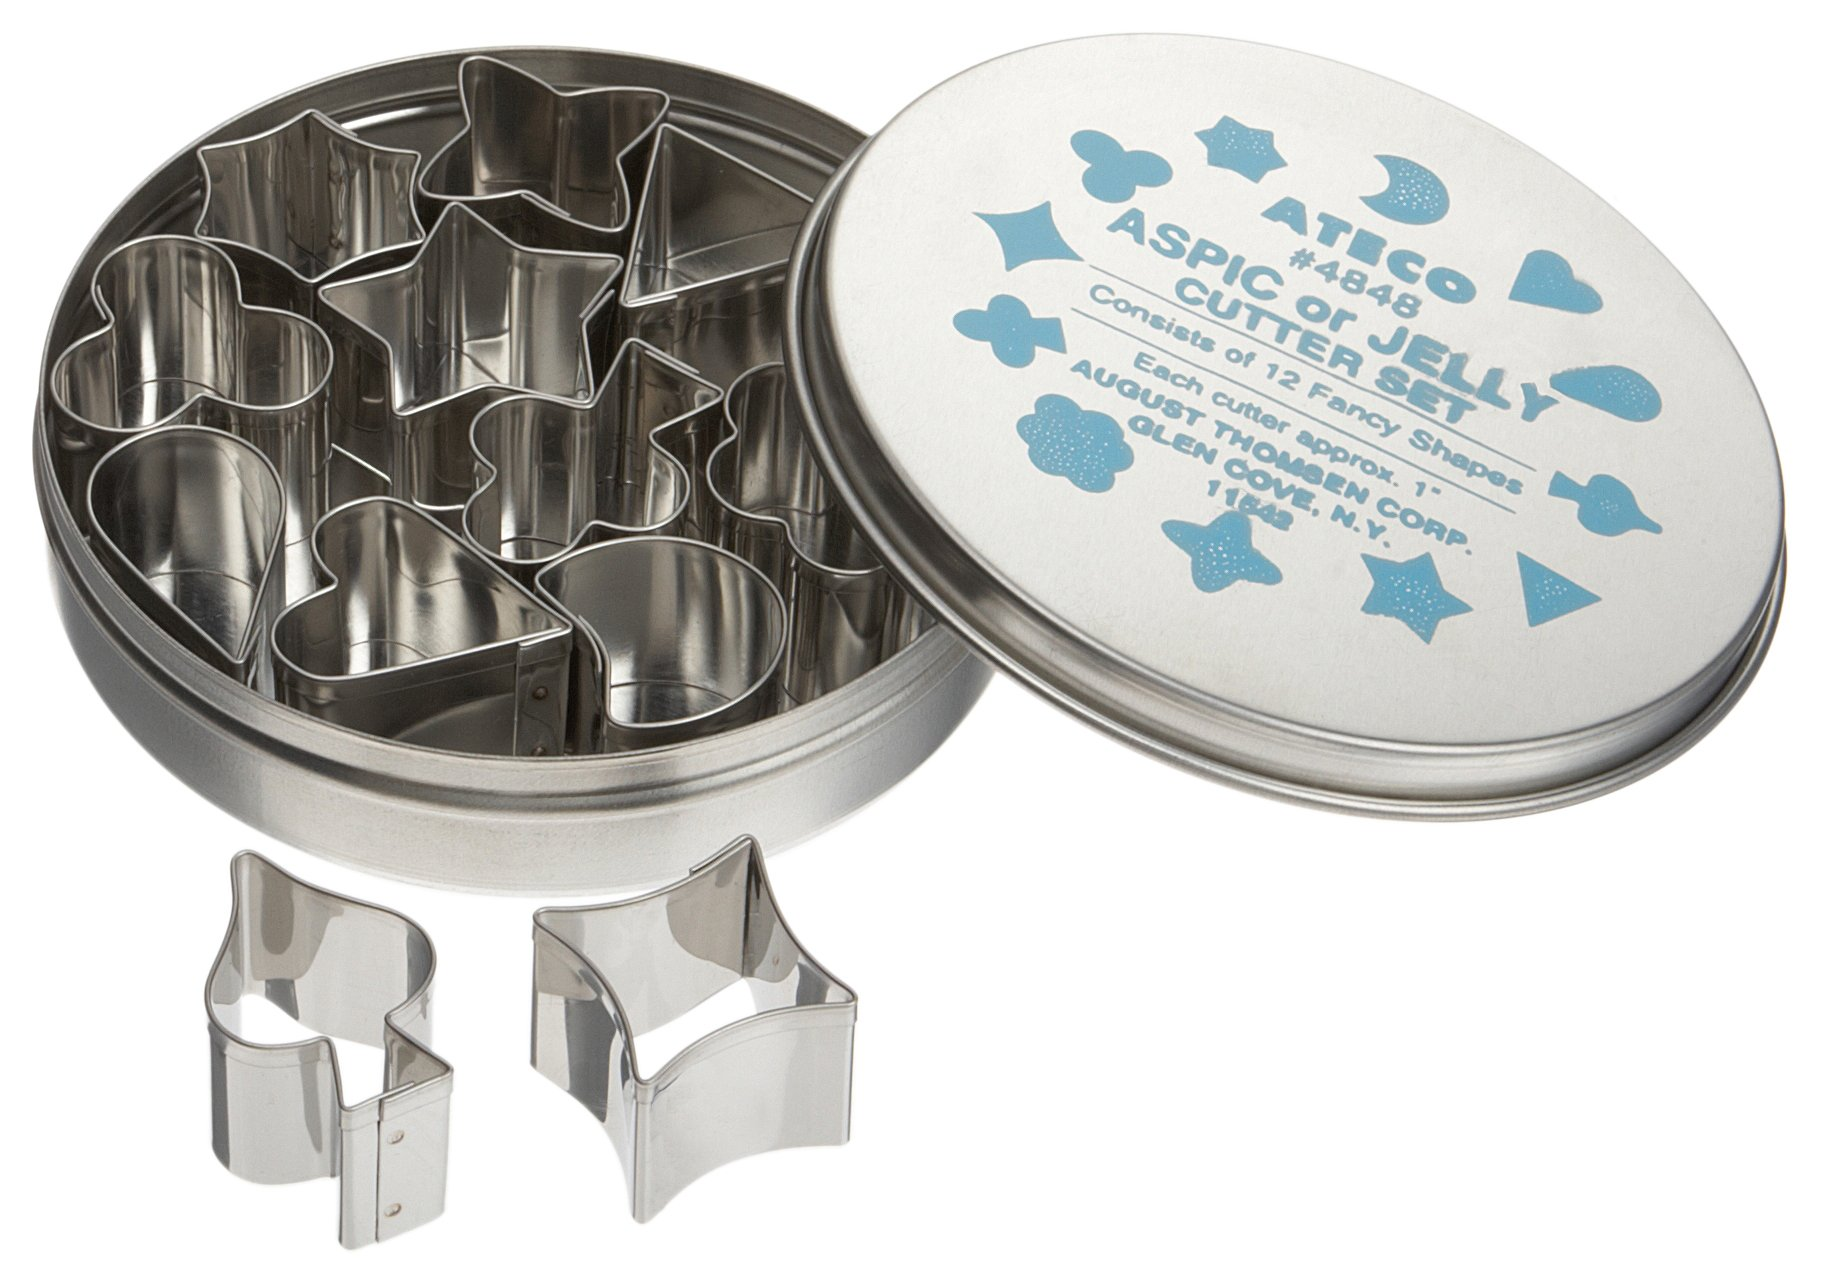 Ateco 4848 Plain Edge Aspic or Jelly Cutter Set in Assorted Shapes, Stainless Steel, 12 Pc Set